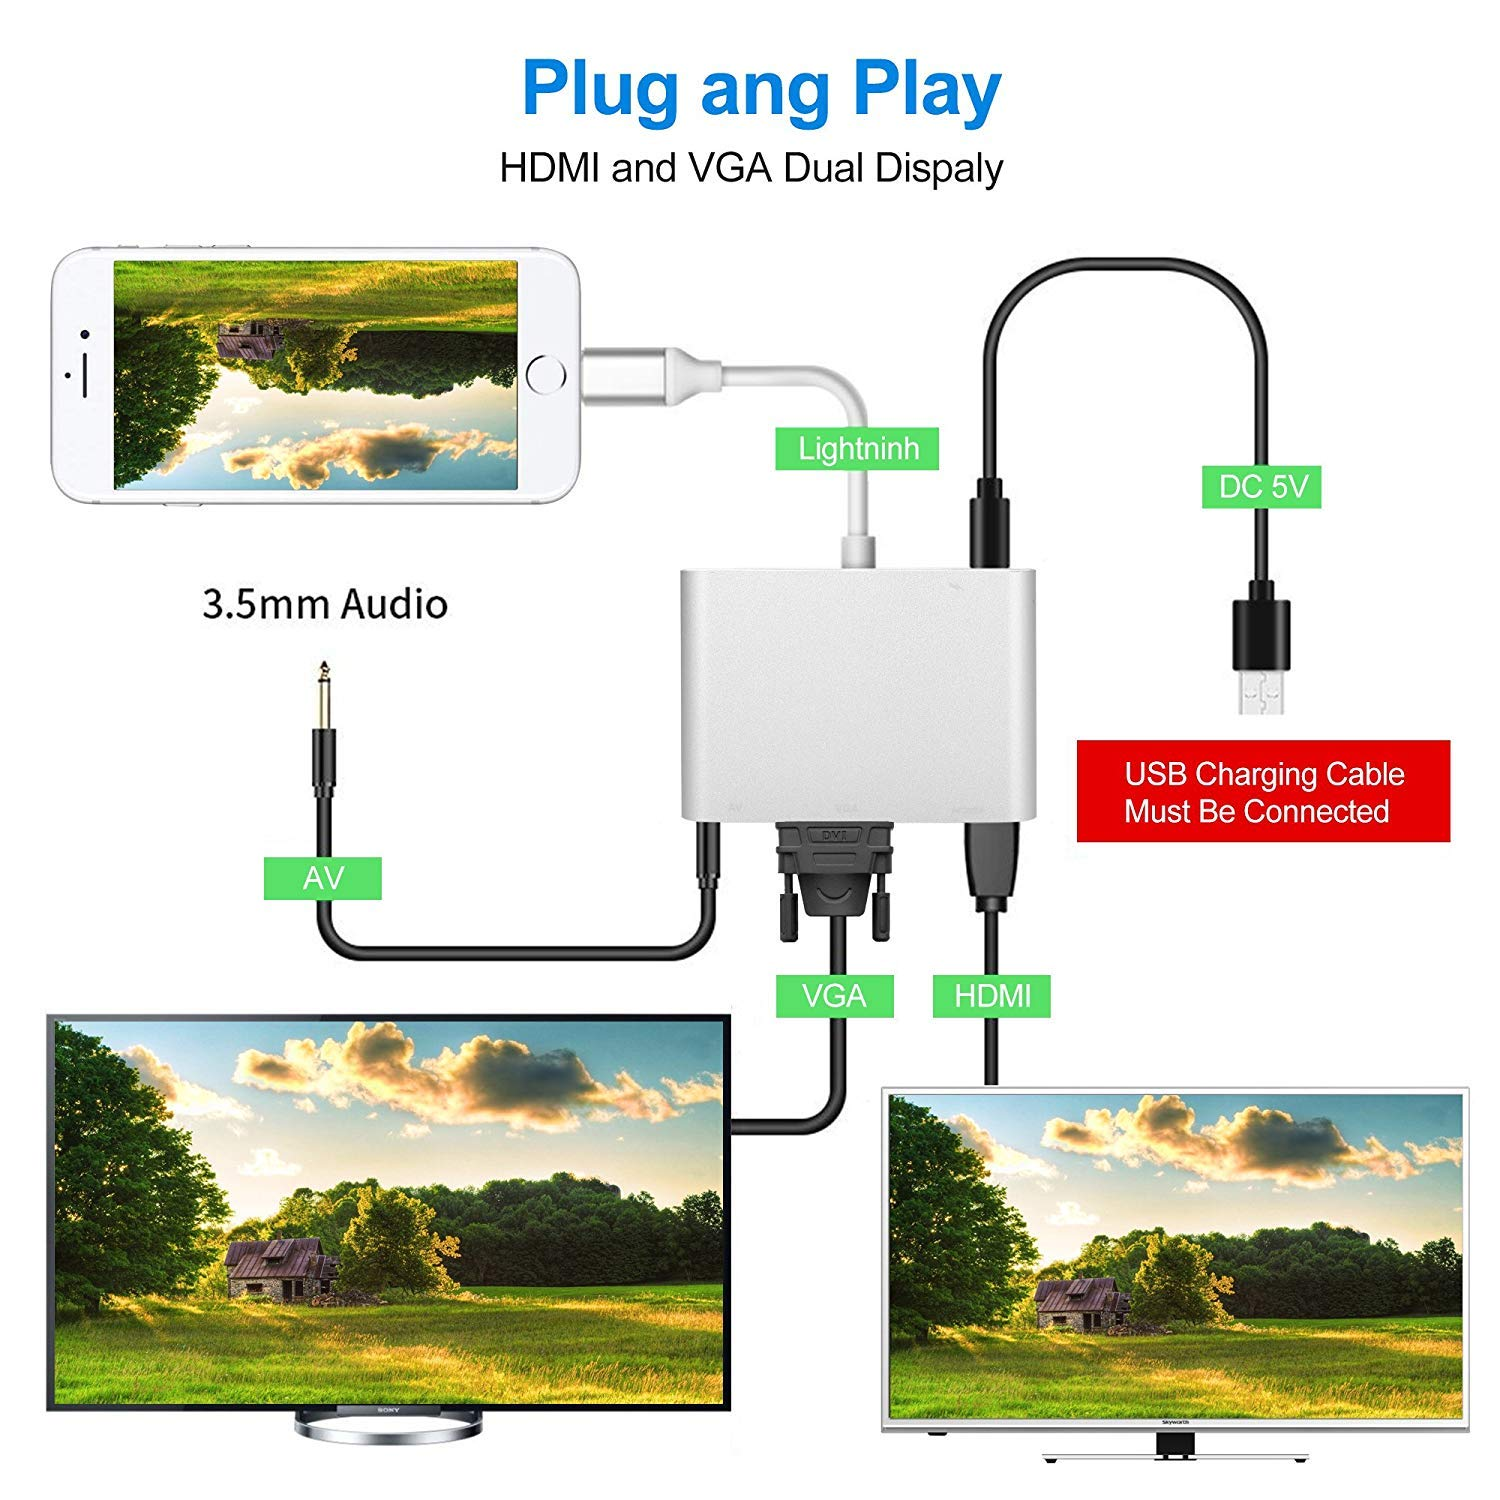 Bambud Compatible with iPhone iPad to HDMI VGA AV Adapter Converter 4 in 1 Plug and Play Digital AV Adapter Compatible with iPhone Xs Max XR 8 7 6s Plus 6 iPad iPod to HDTV Projector Monitor